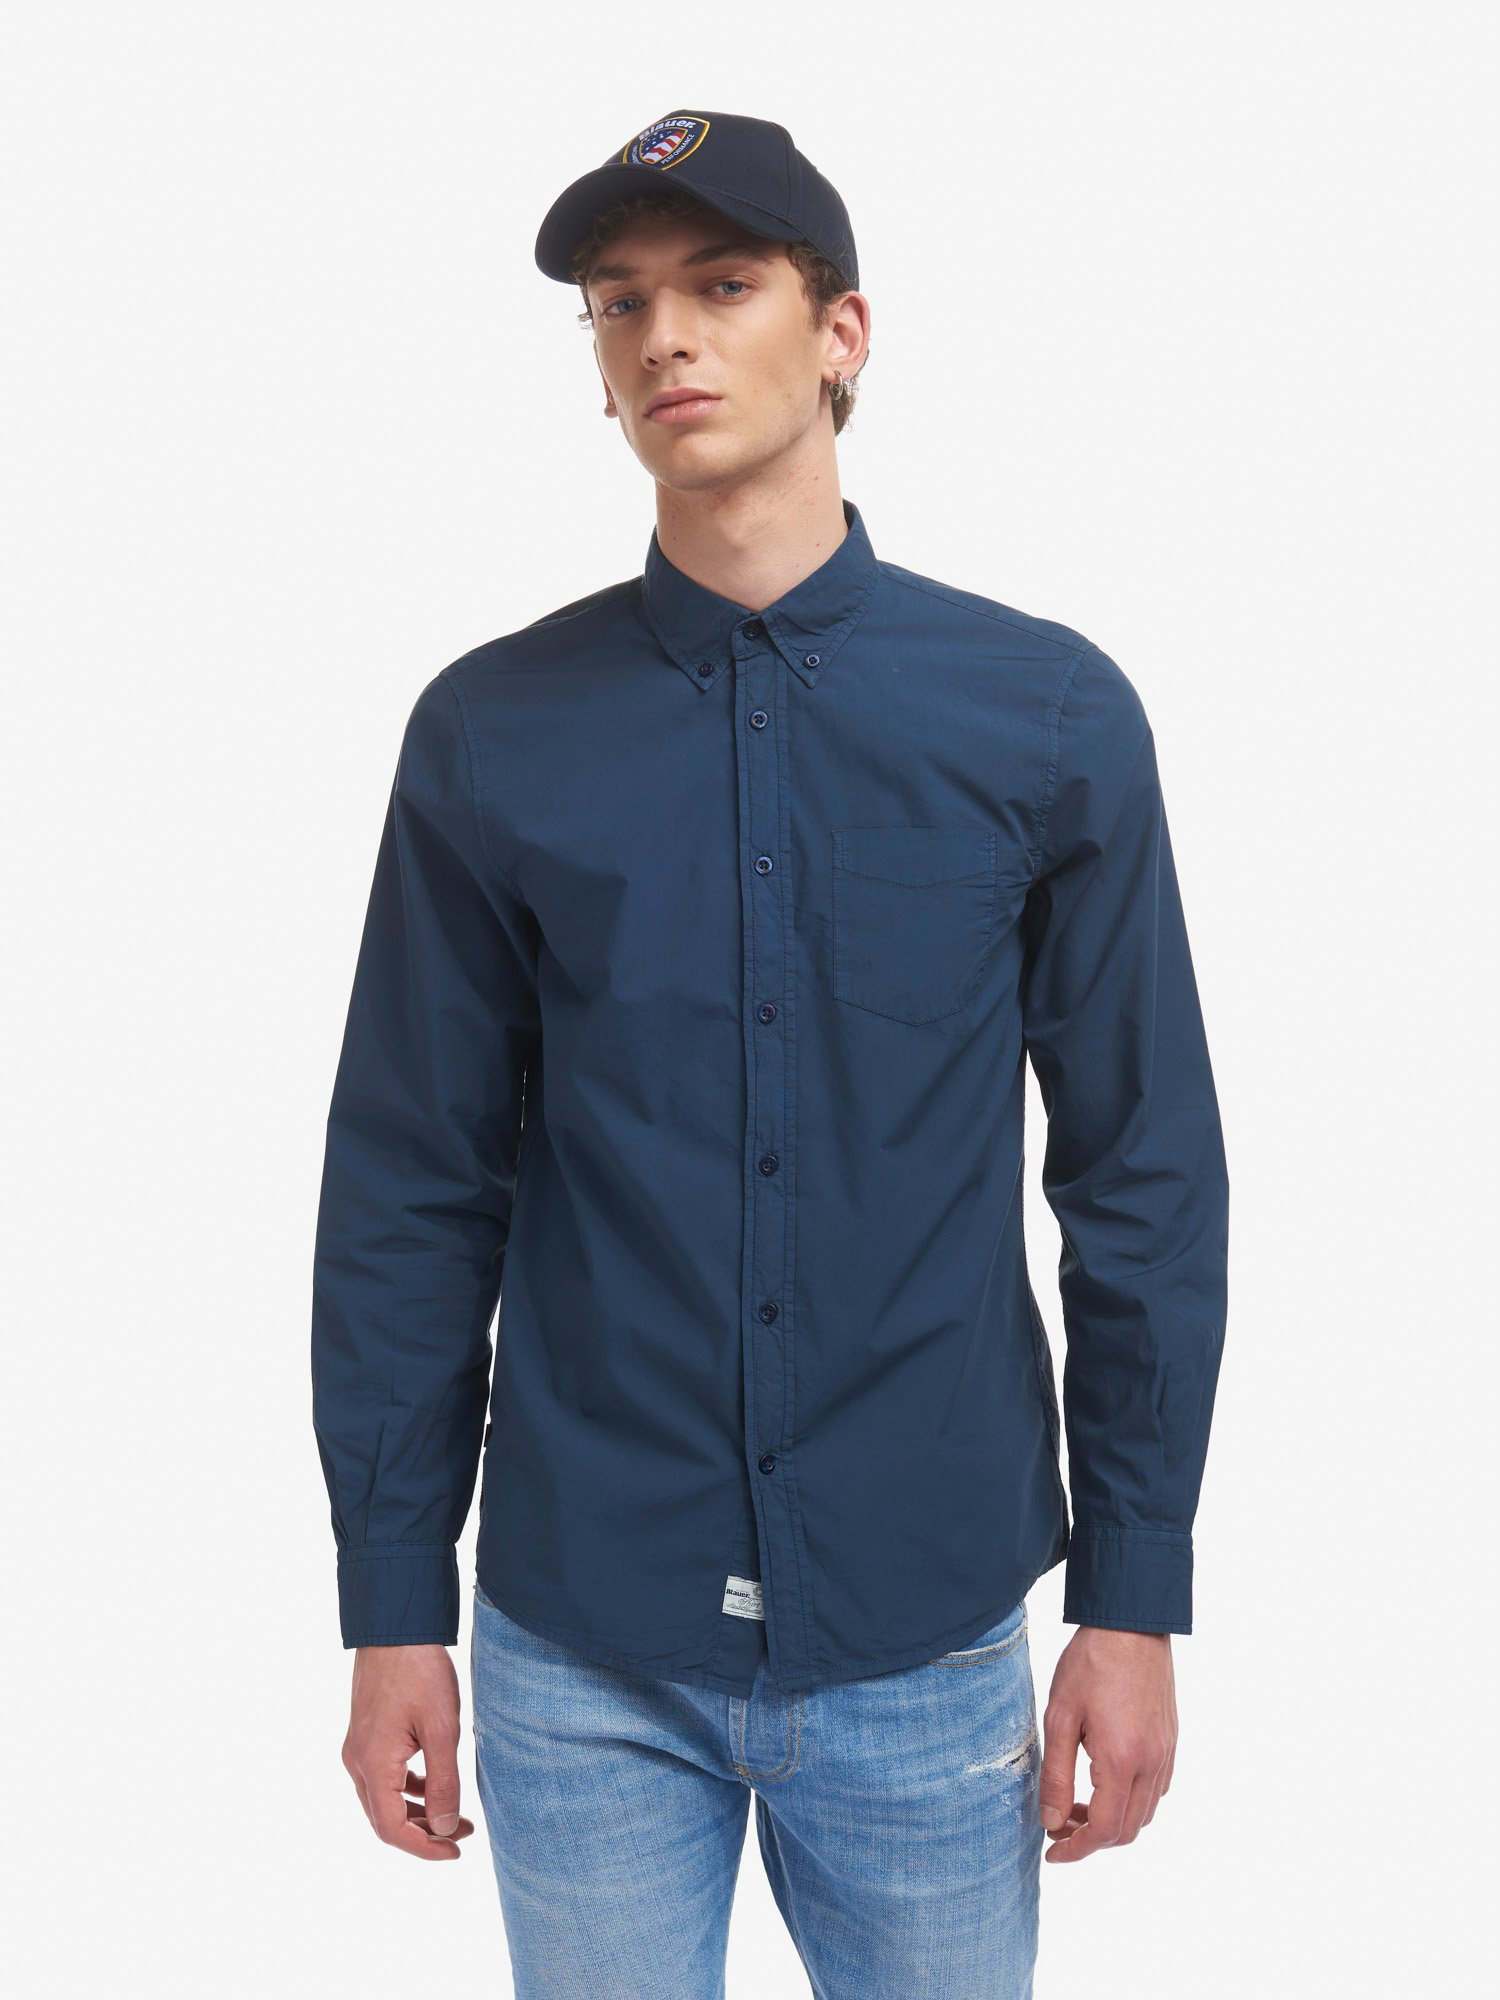 CHEMISE POPELINE MANCHES LONGUES - Blauer